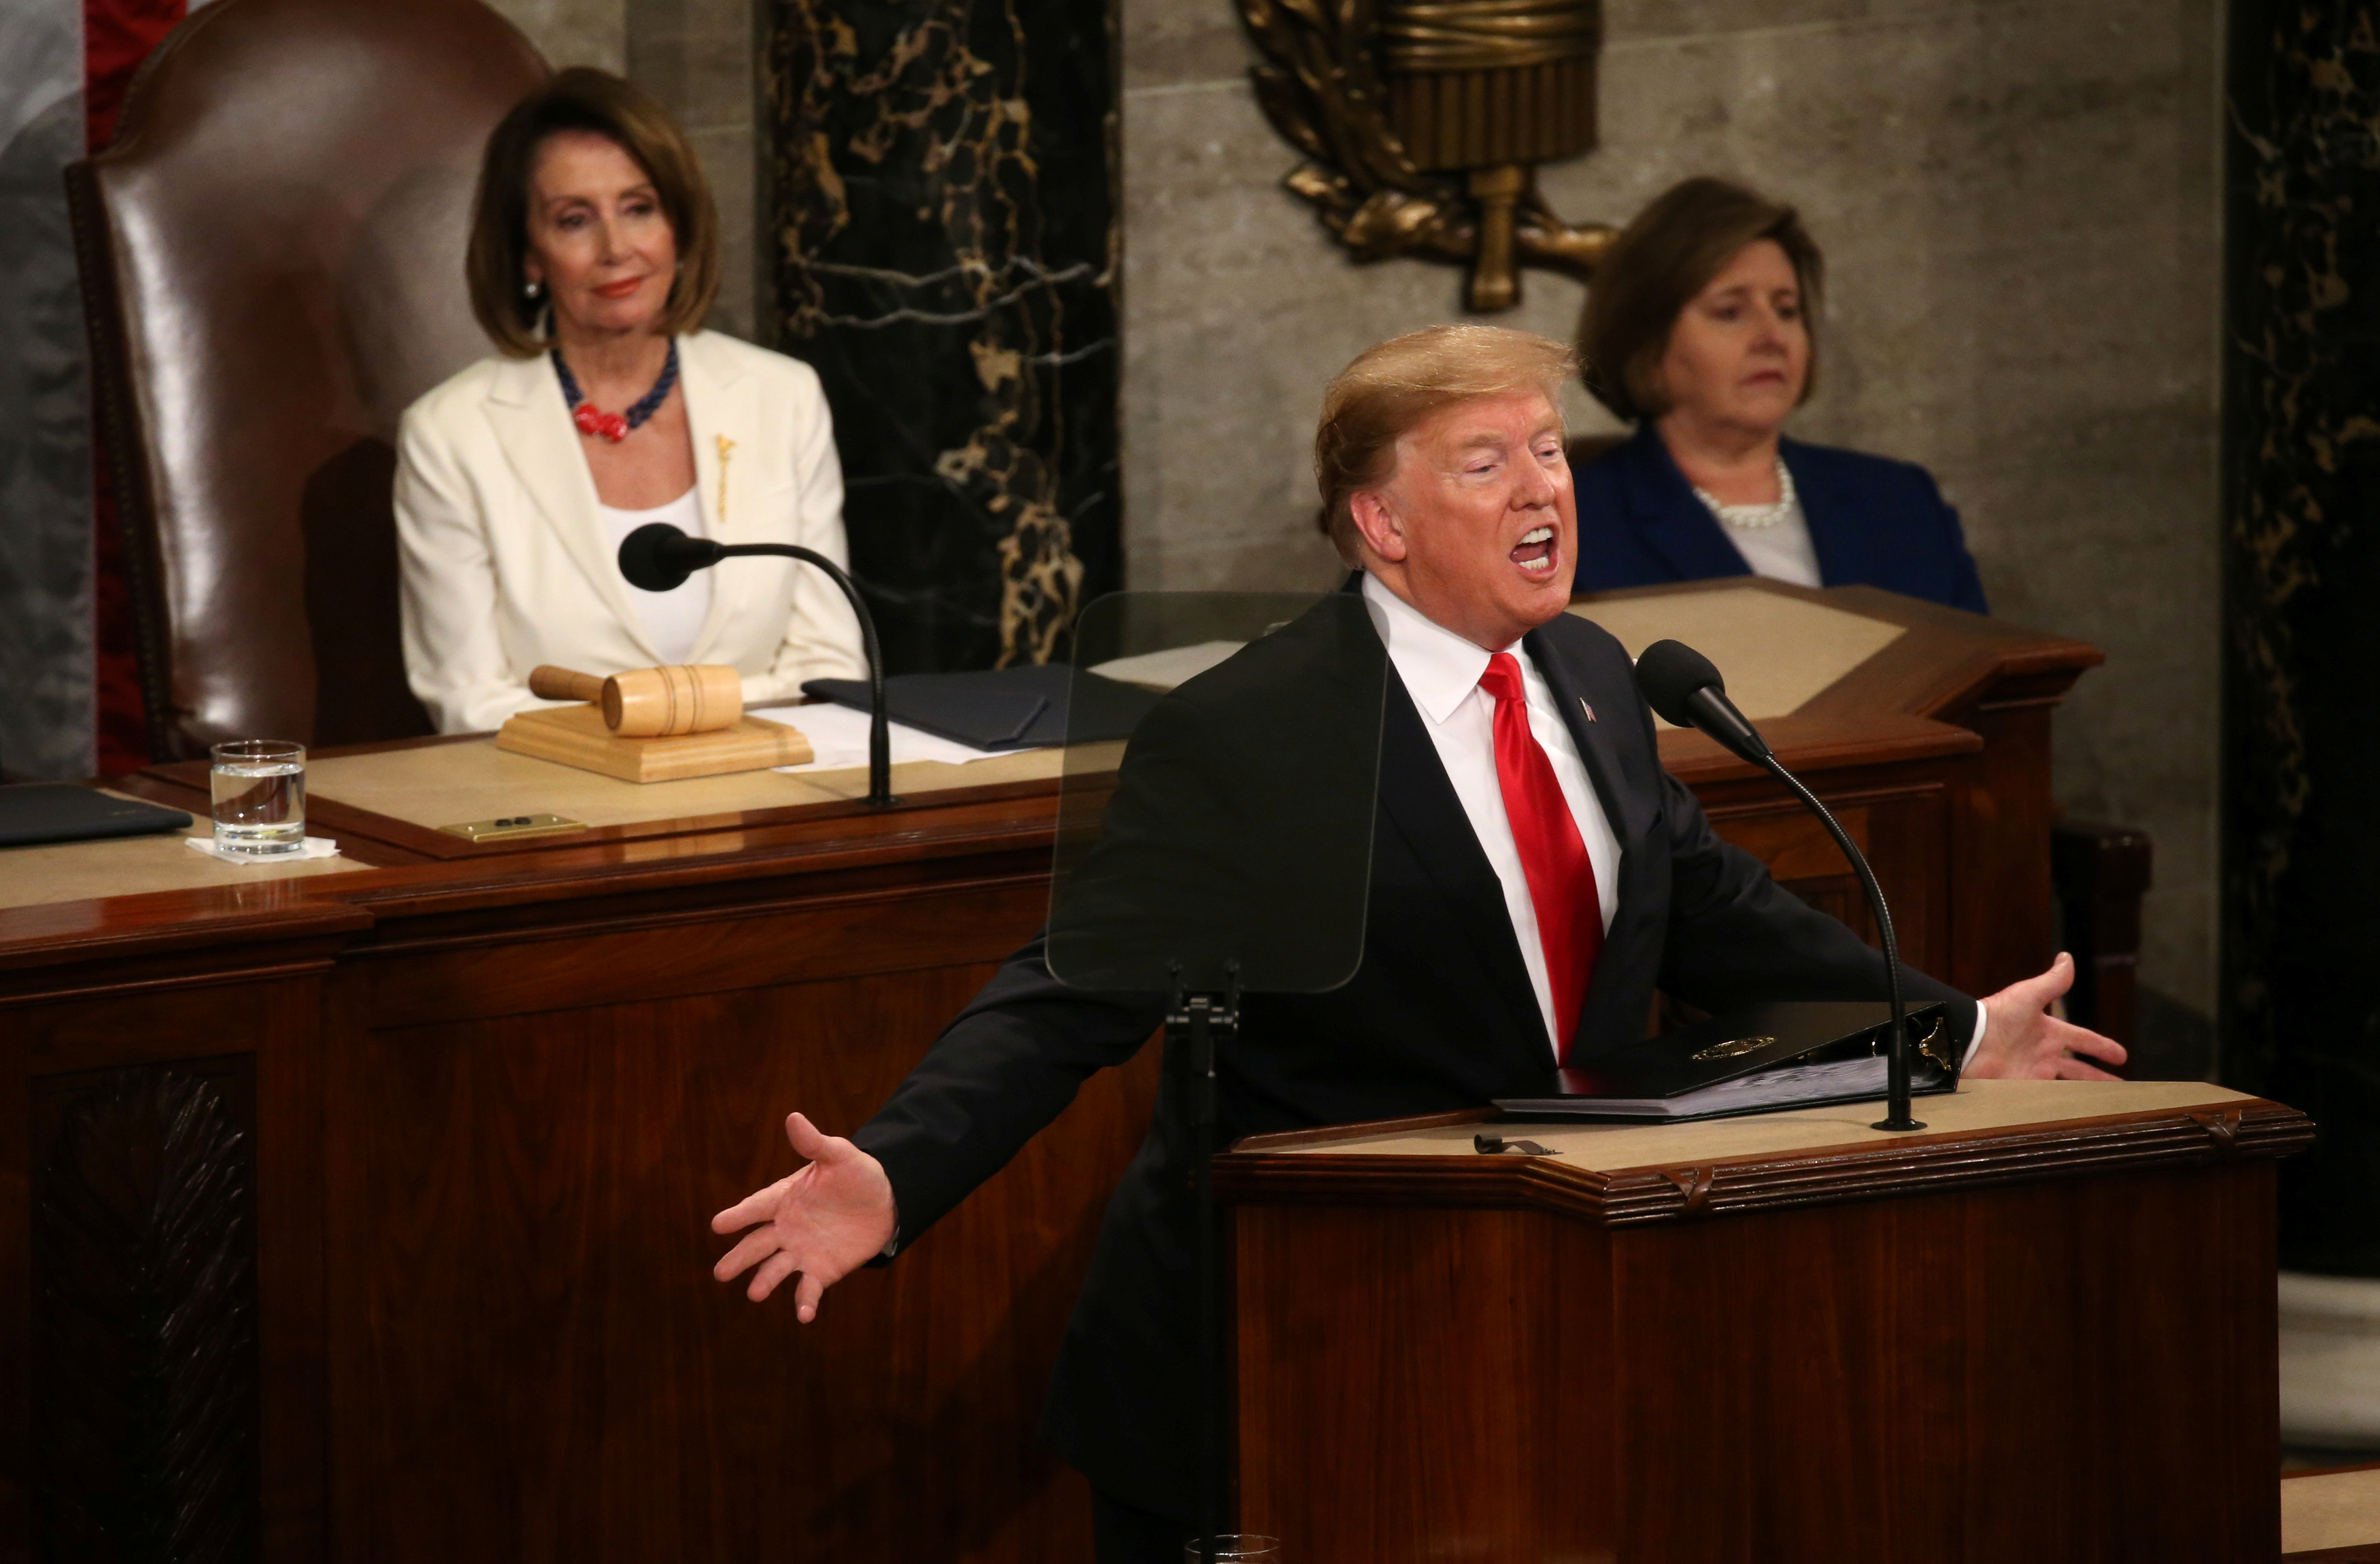 Speaker of the House Nancy Pelosi (D-CA) watches as U.S. President Donald Trump delivers his second State of the Union address to a joint session of the U.S. Congress in the House Chamber of the U.S. Capitol on Capitol Hill in Washington, U.S. February 5, 2019. (REUTERS/Leah Millis)